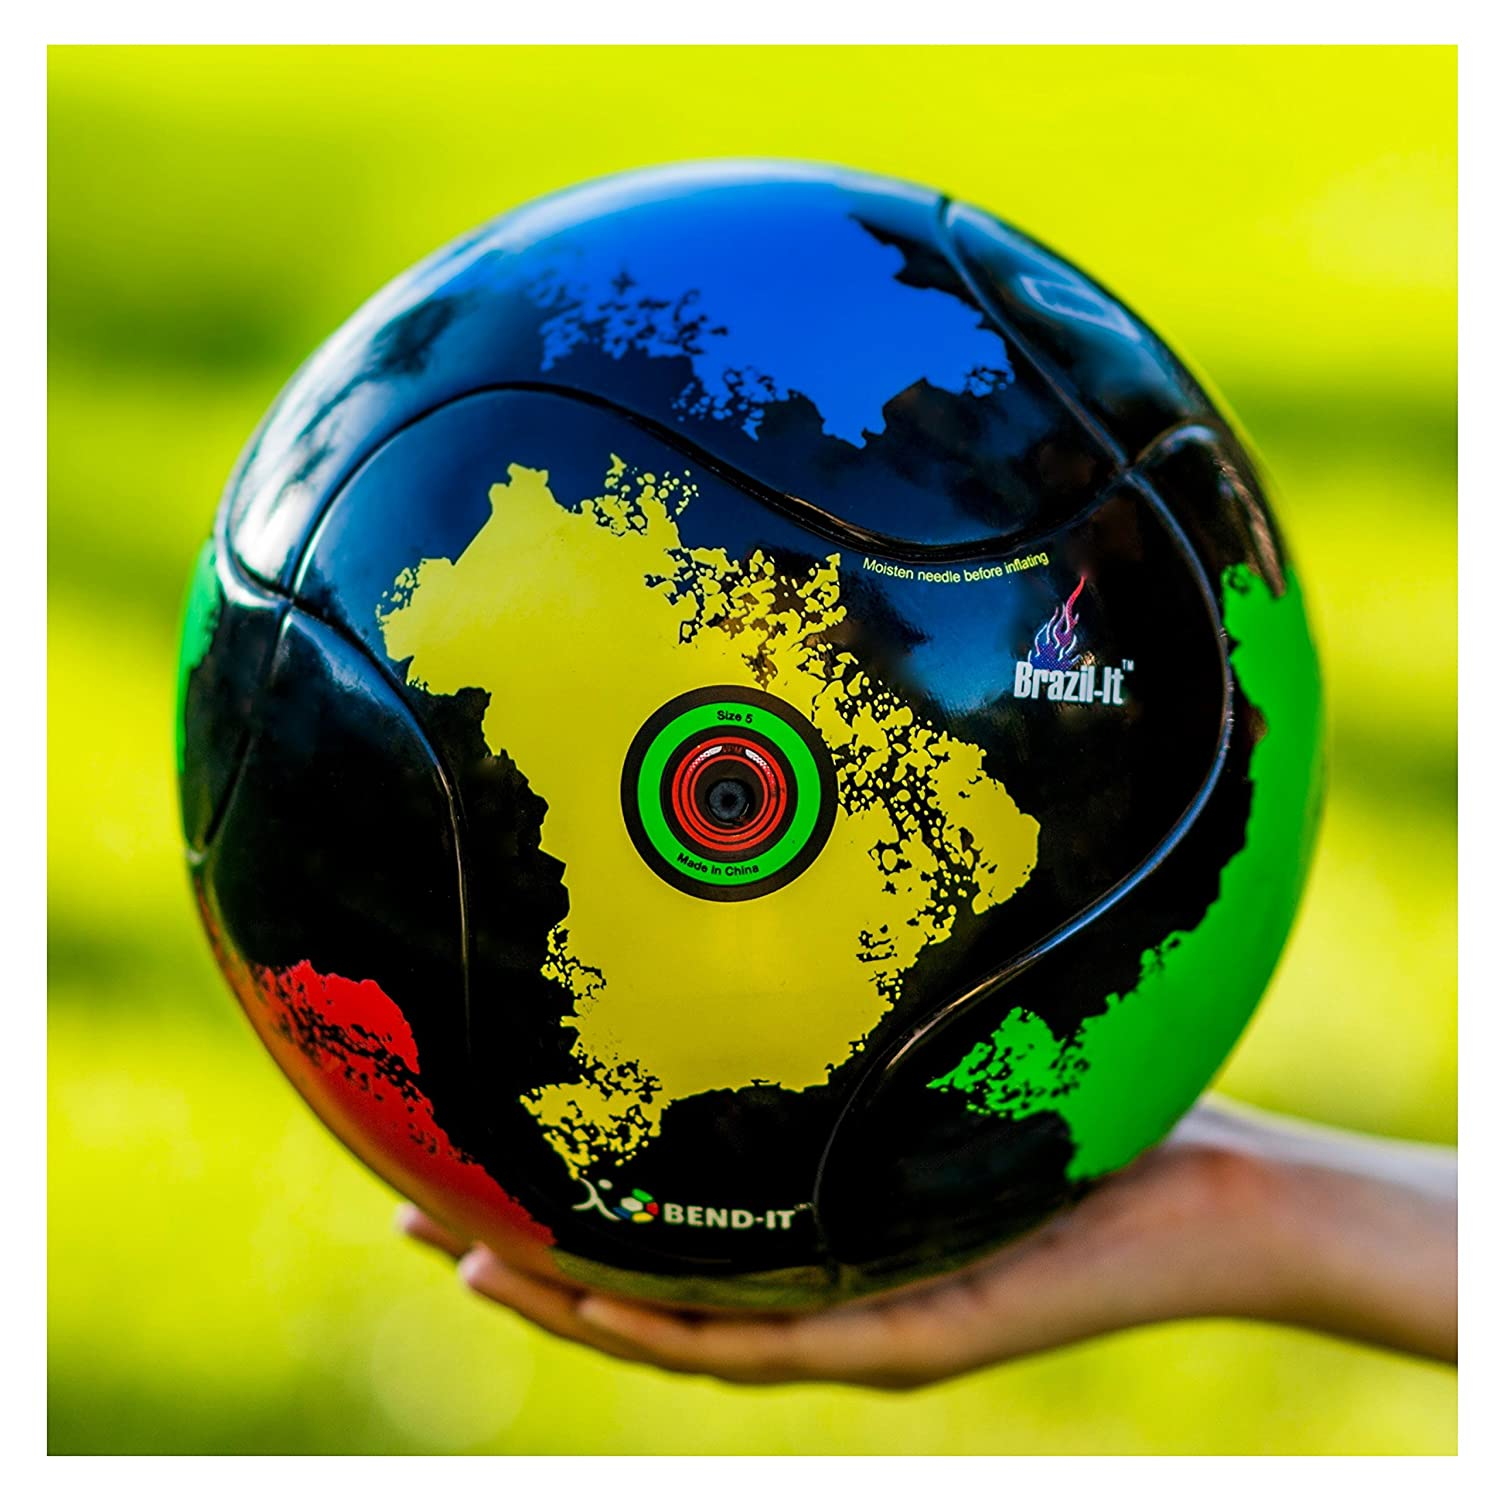 bend-itサッカー、knuckle-it Pro、サッカーボール、Official Match Ball with VPM and VRCテクノロジー B015IO797E 5|Brazil-It Youth Premier OMB Match Soccer Ball Brazil-It Youth Premier OMB Match Soccer Ball 5